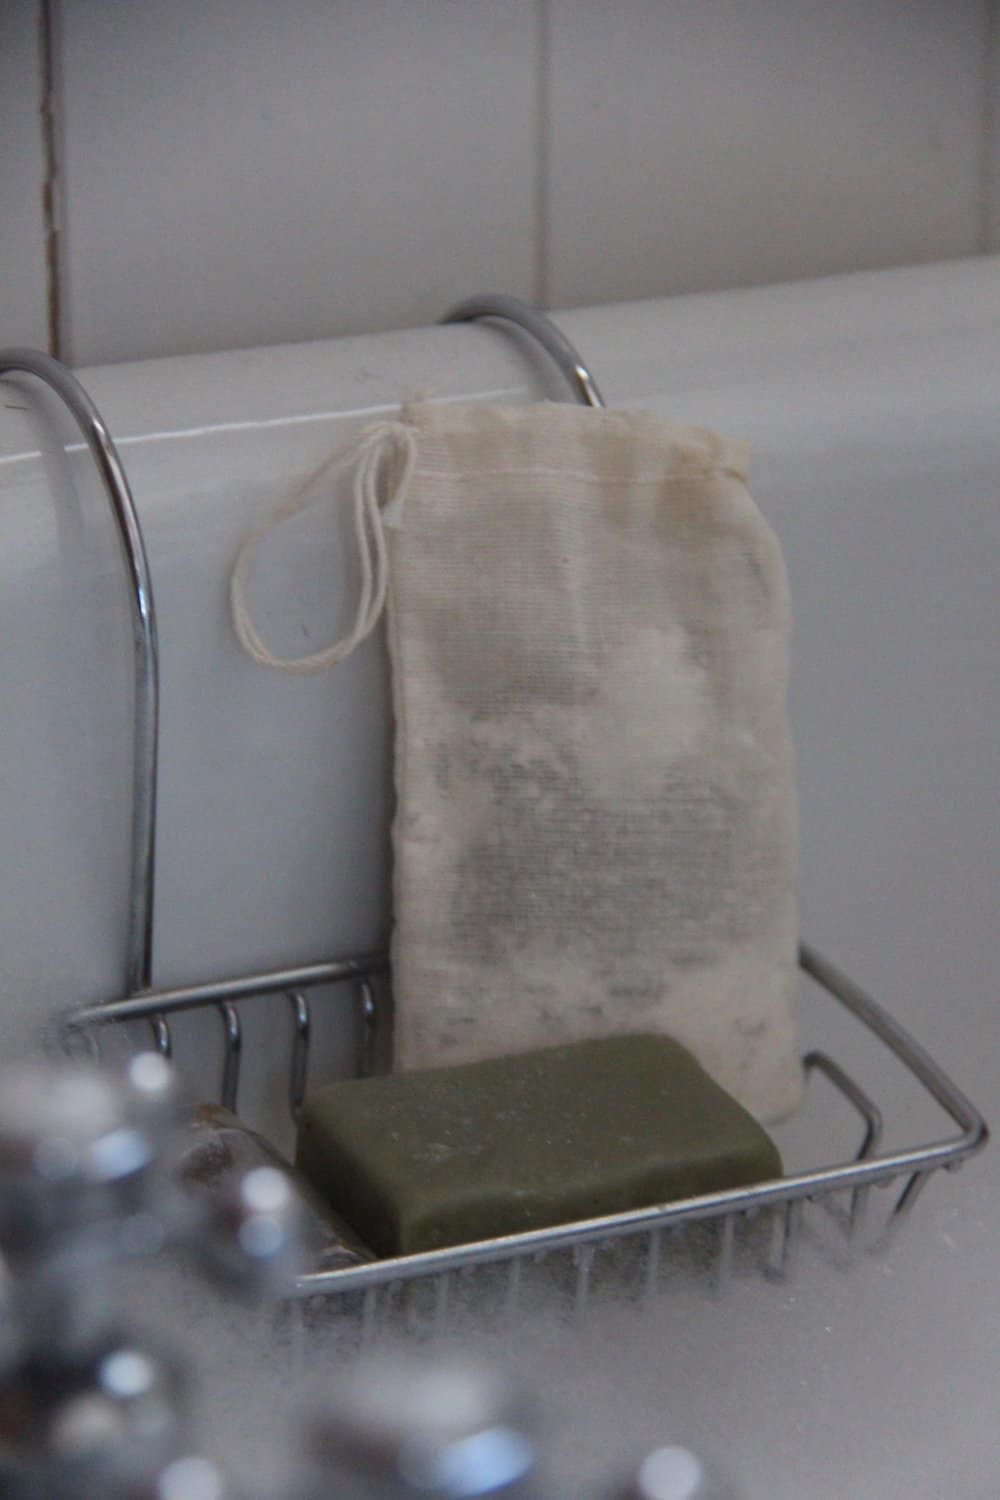 White antique tub edge with silver faucets and soap dish with green bar of soap and fabric tea bag of tub tea